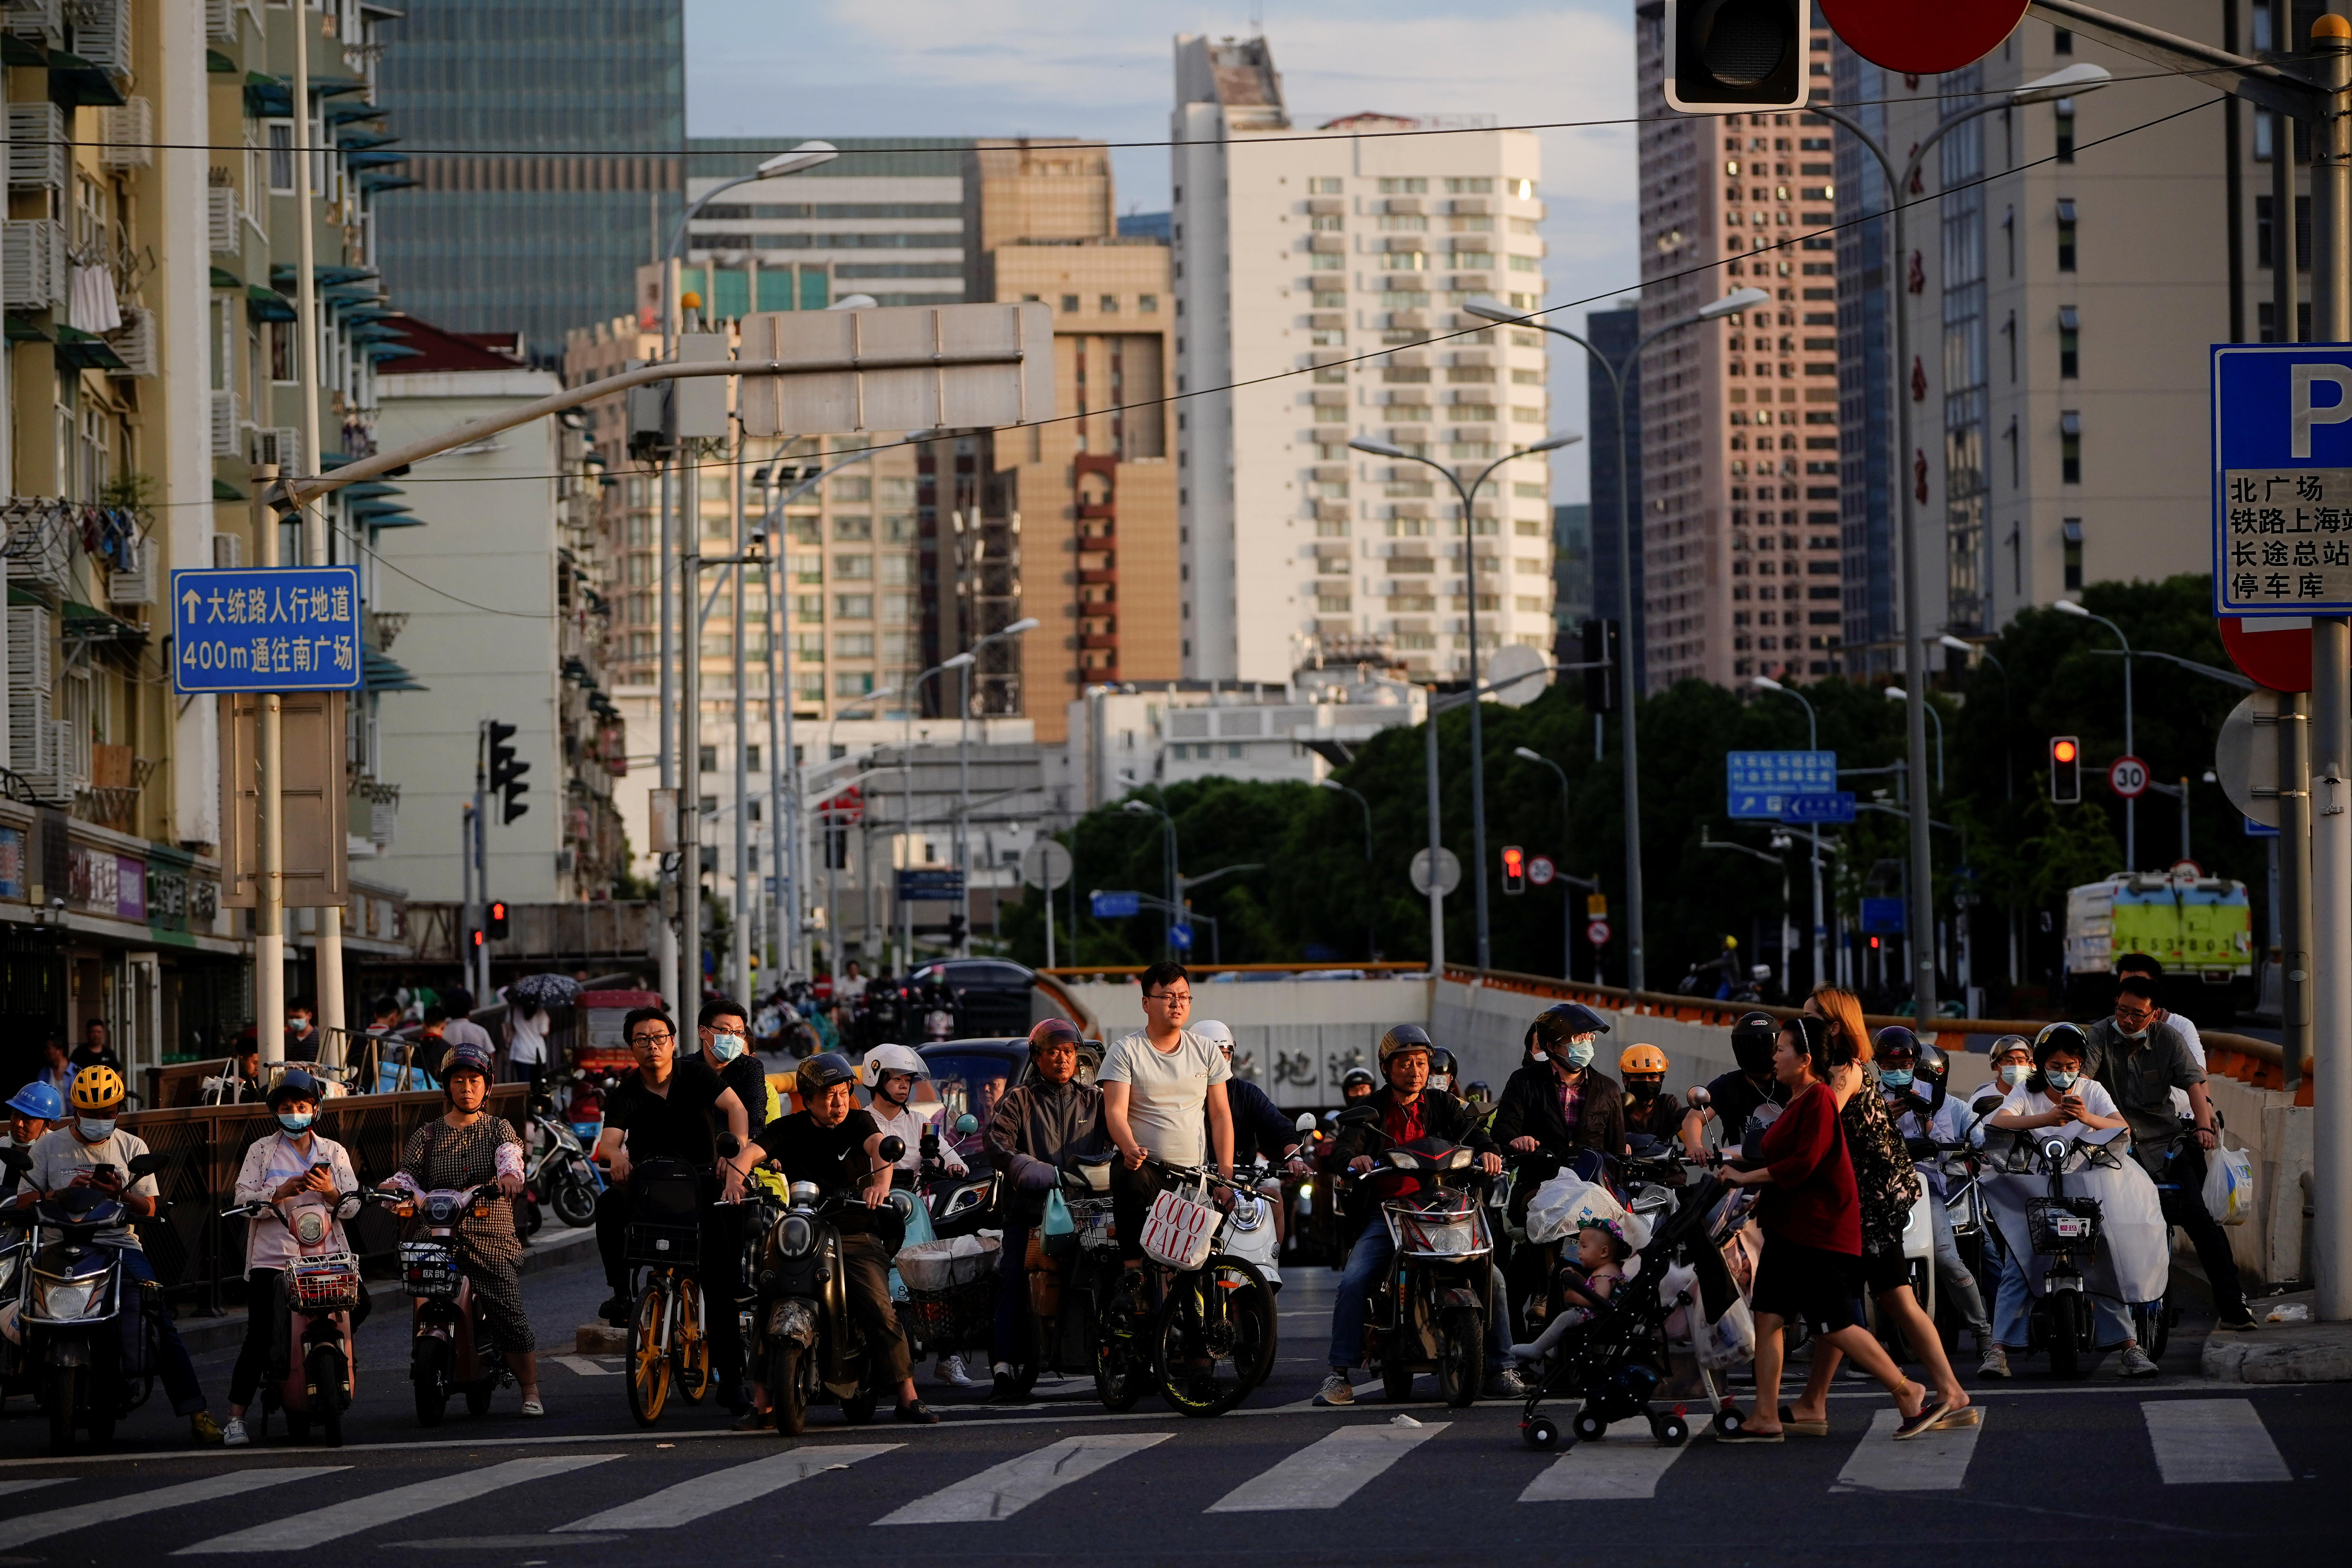 People riding bicycles and motorbikes wait in traffic, amid the coronavirus disease (COVID-19) pandemic, in Shanghai, China May 31, 2021. REUTERS/Aly Song